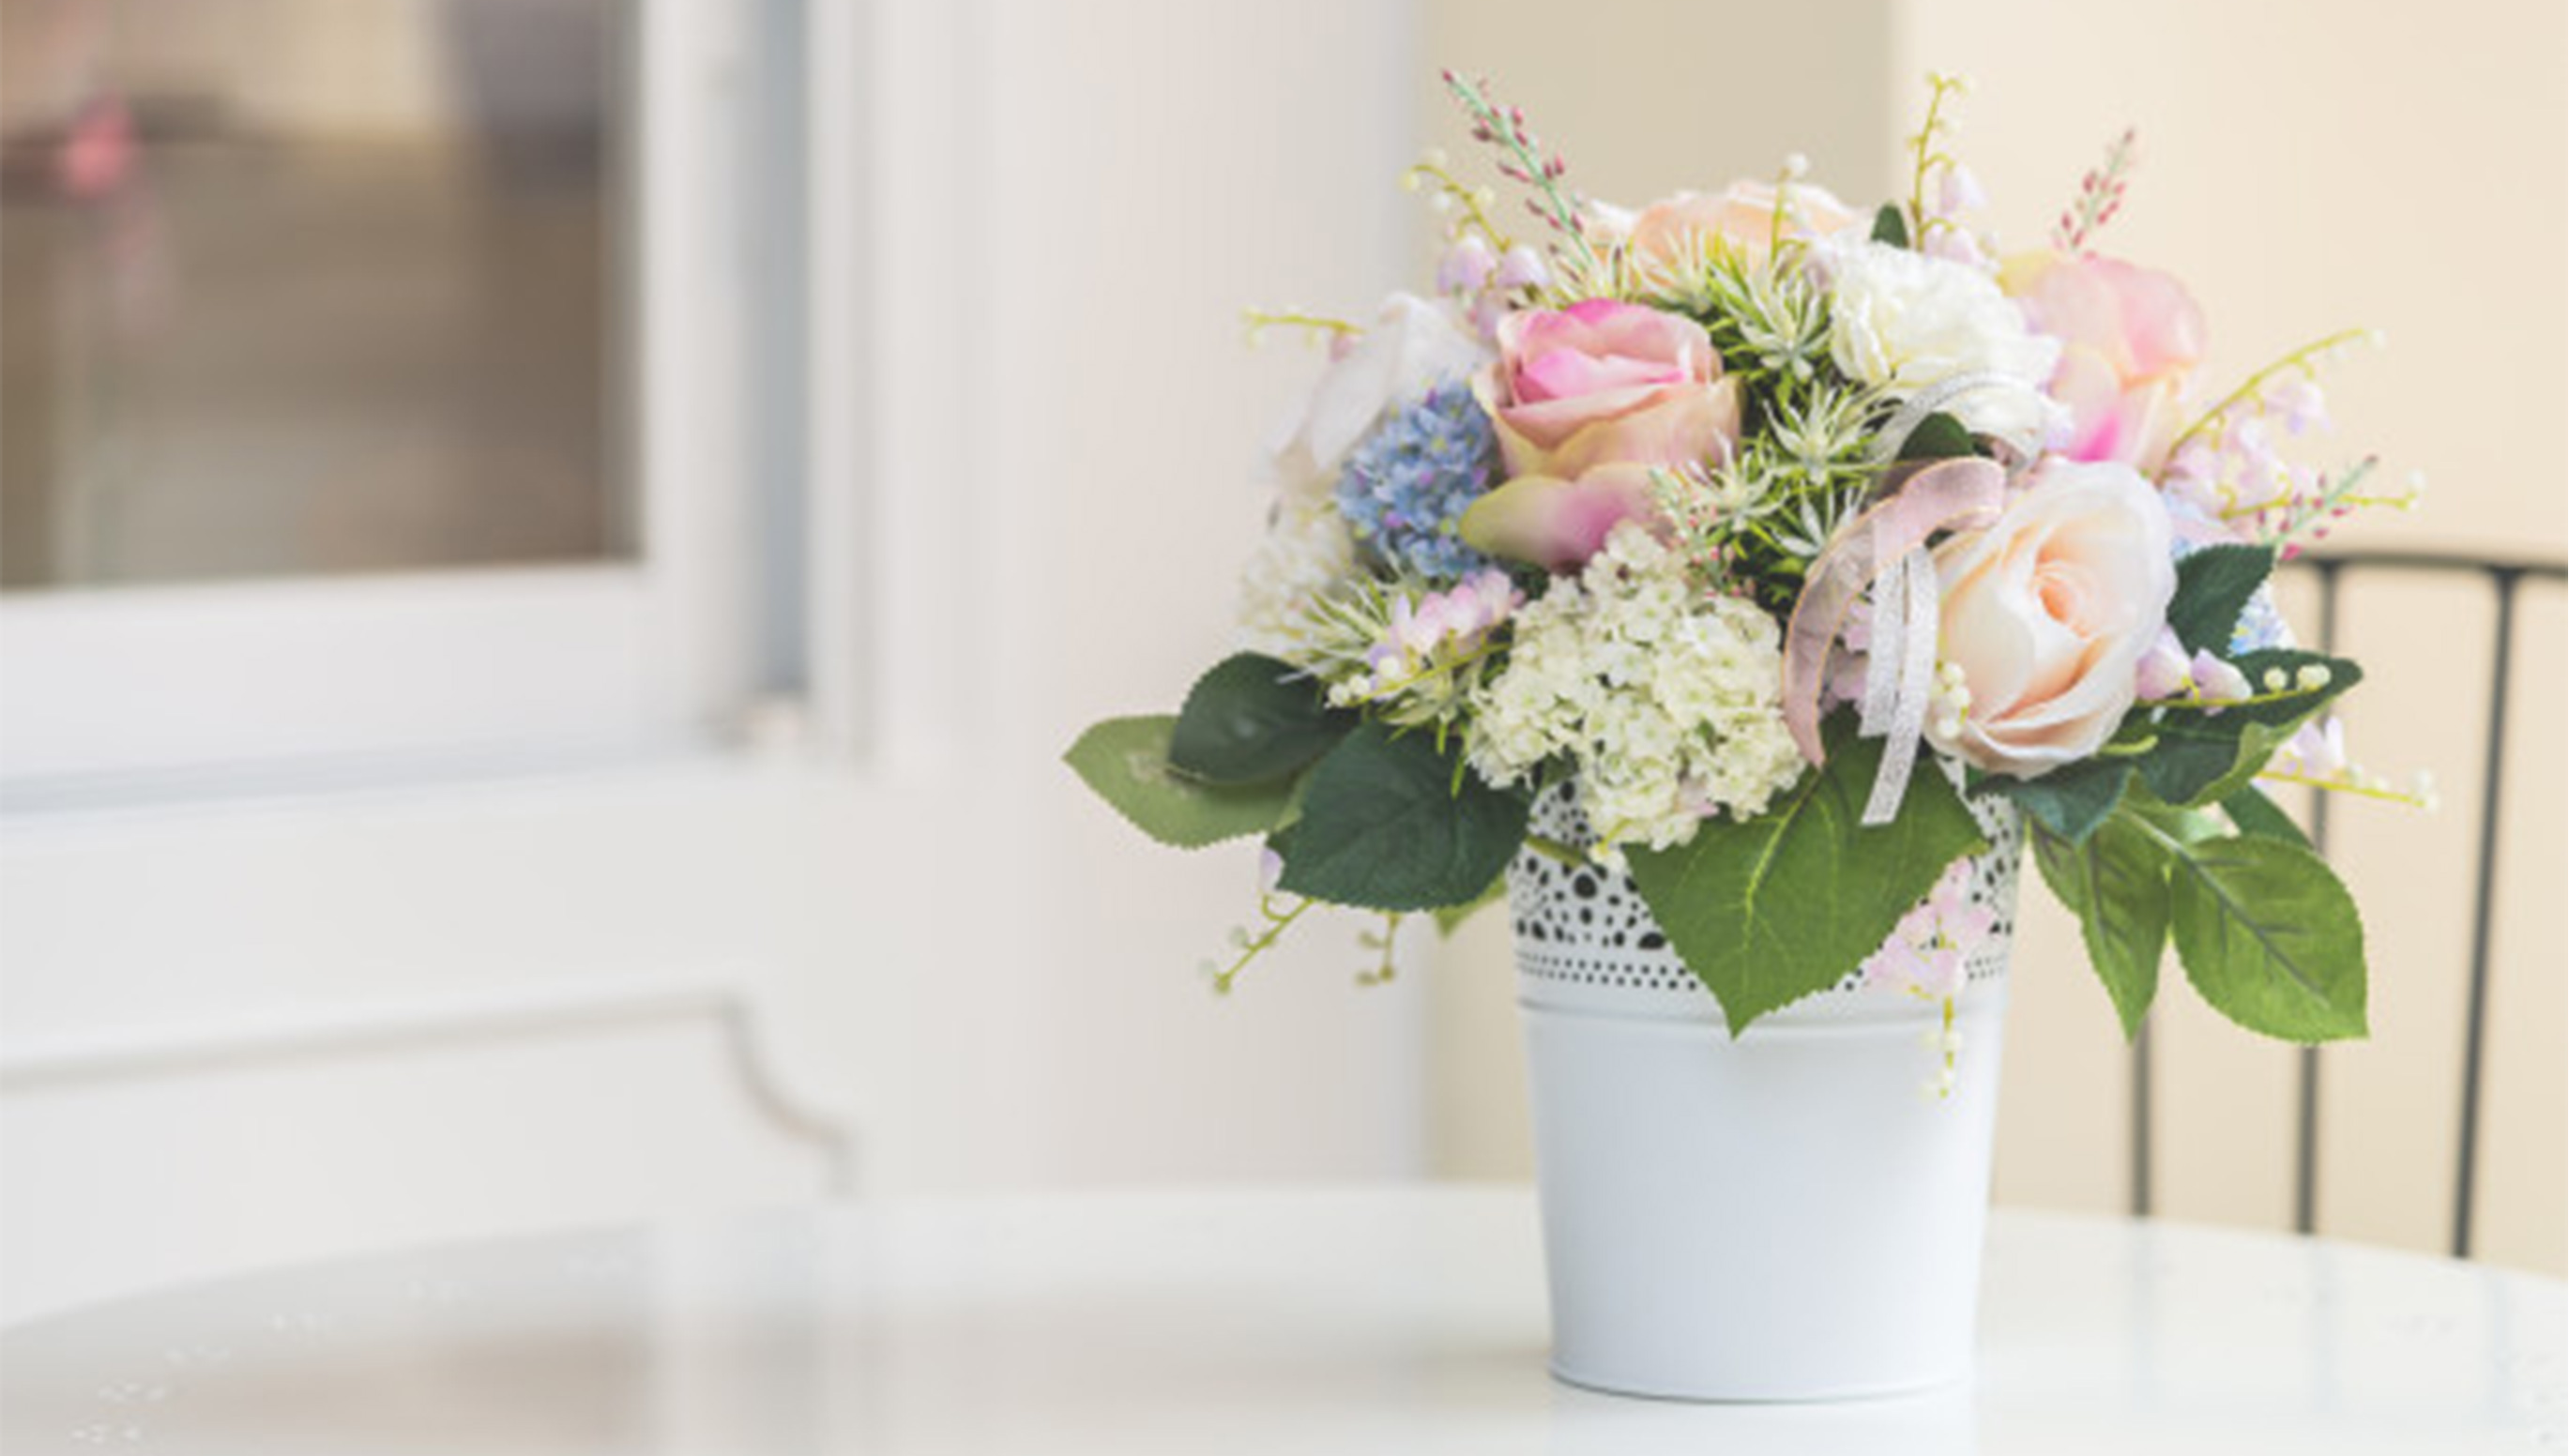 HMother's Day Flowers that Every Mom Loves